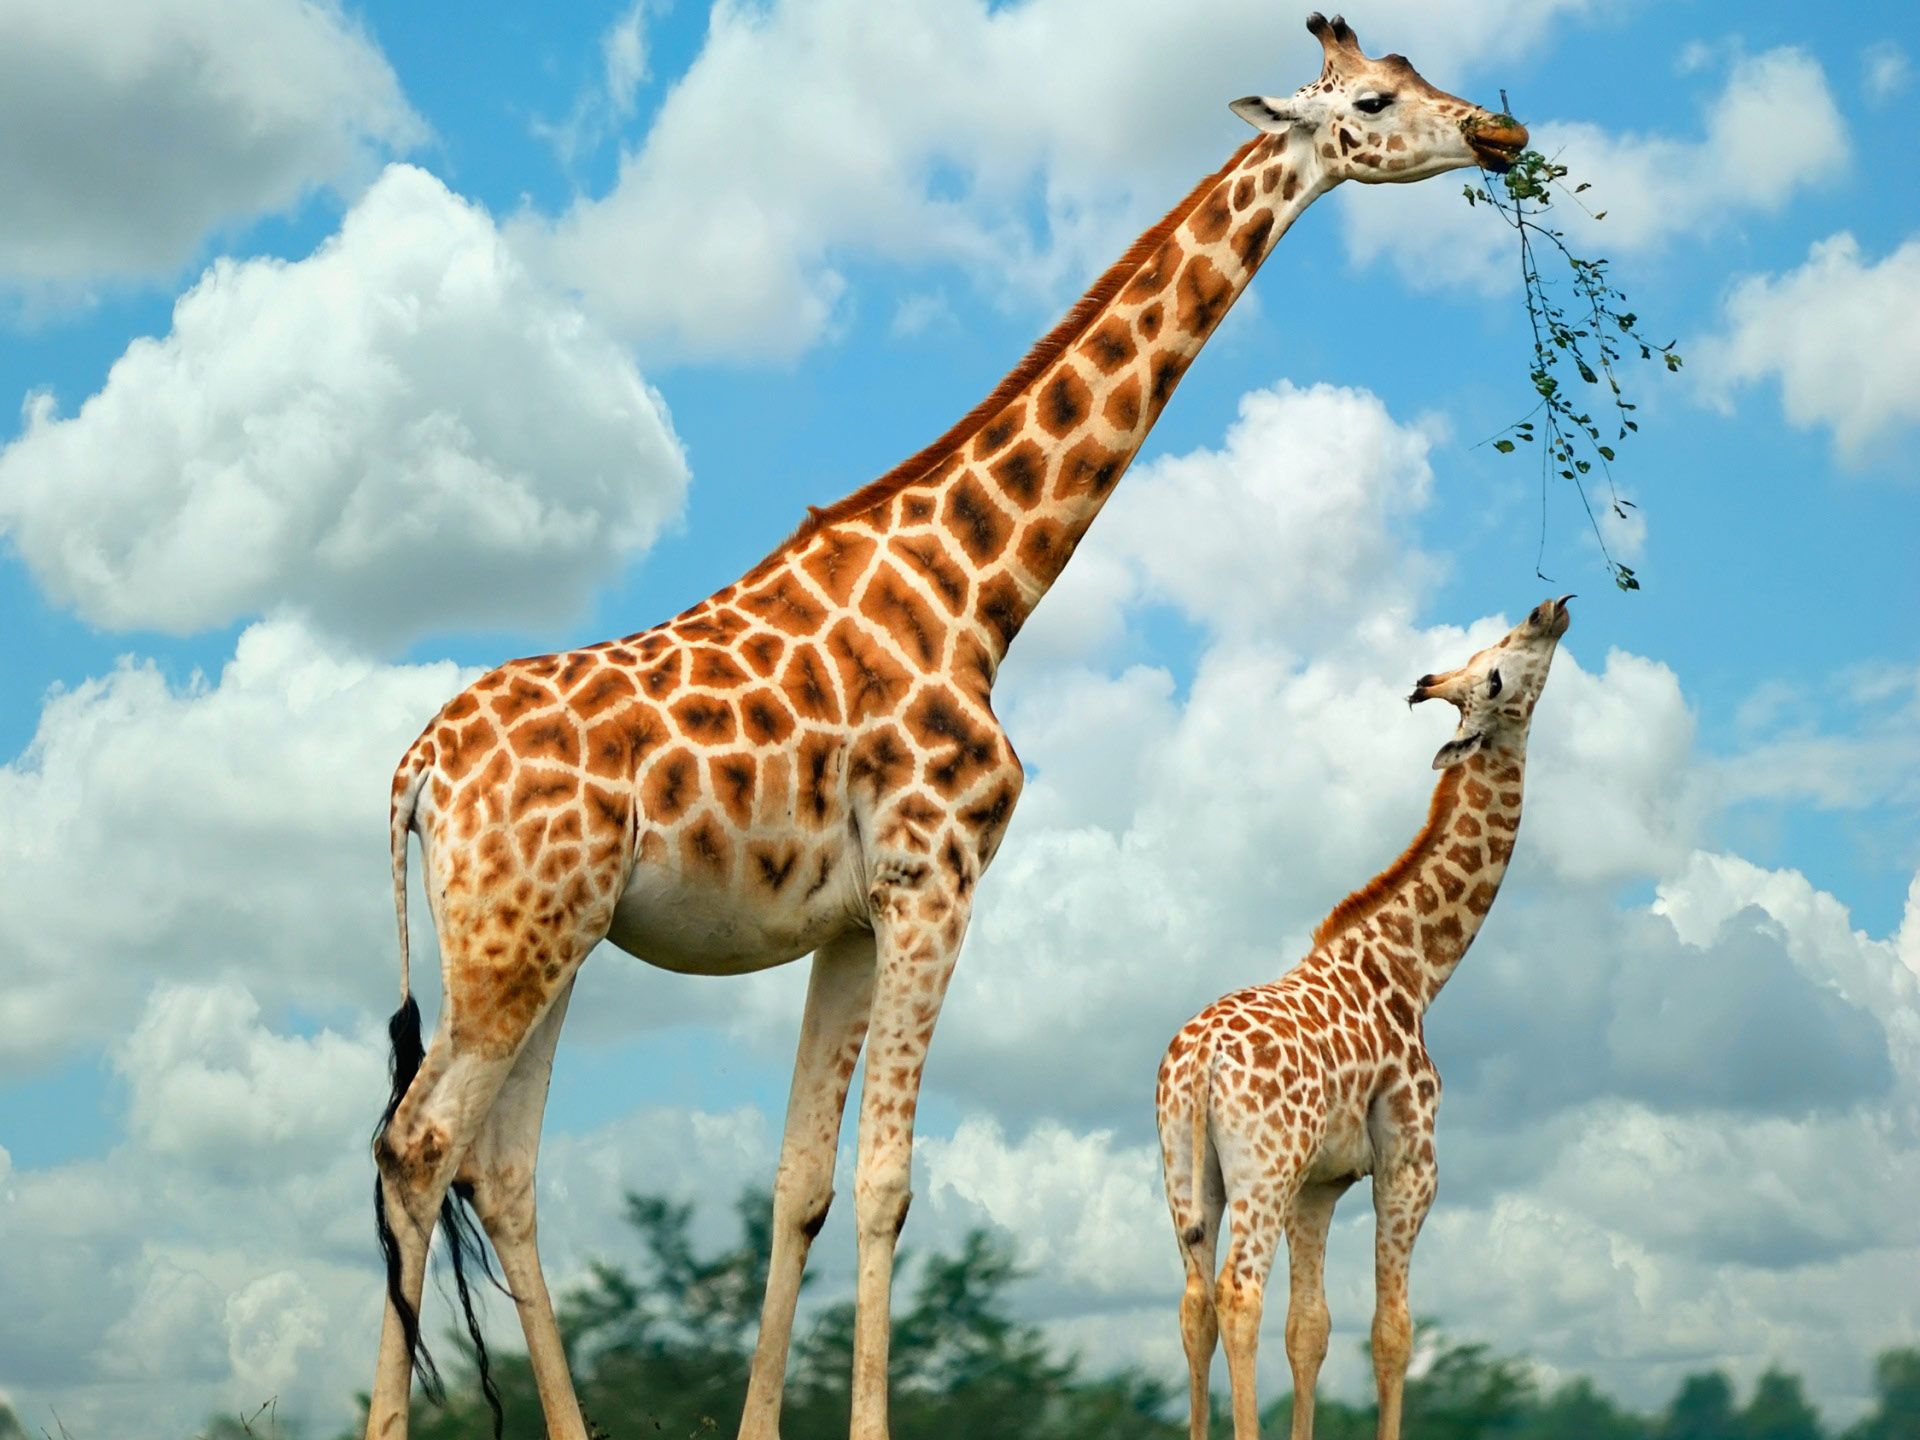 Desktop backgrounds · Backgrounds · 3D-Graphics Family of giraffes